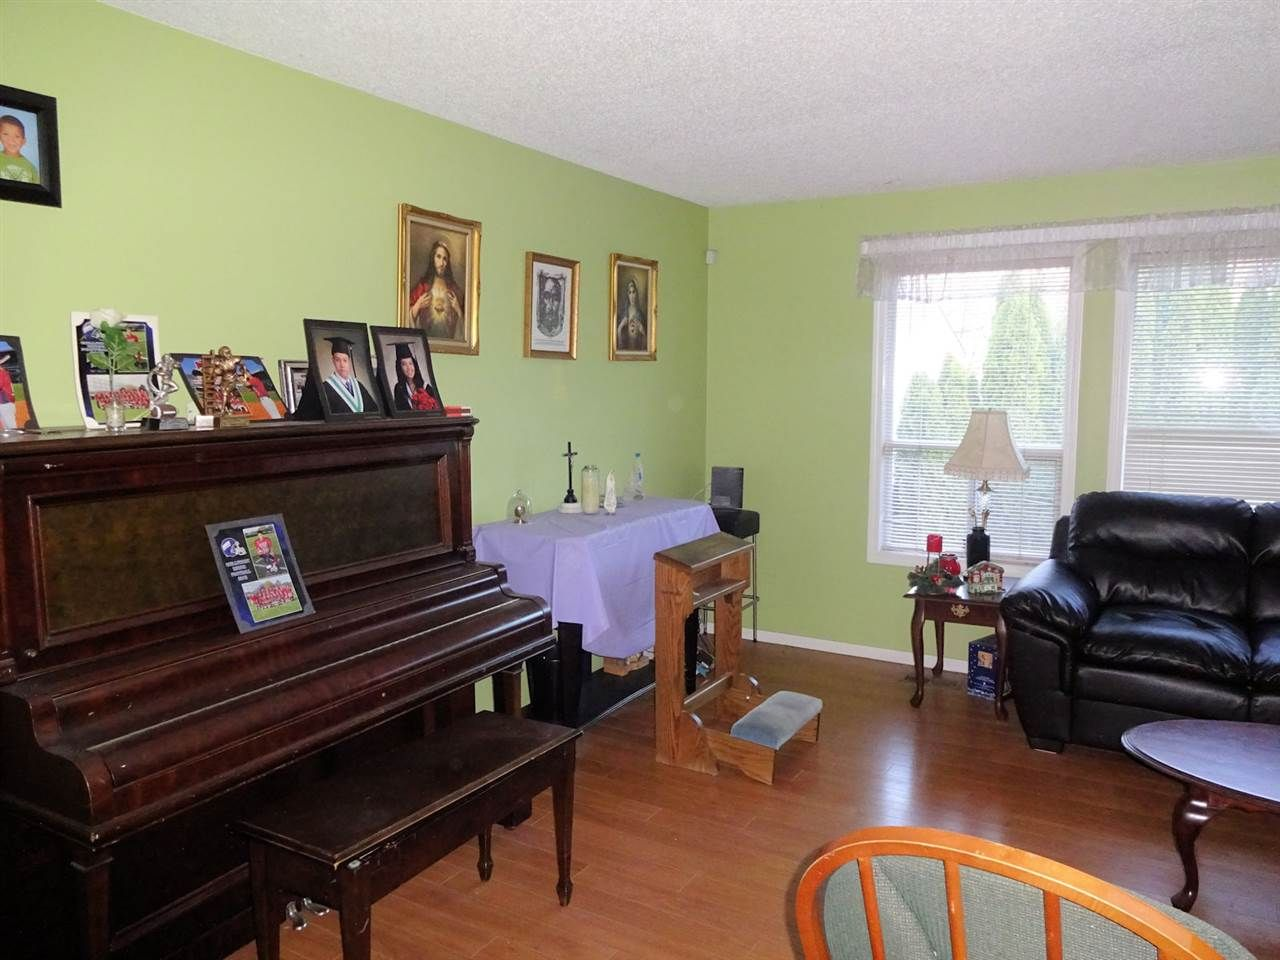 Photo 5: Photos: 6245 DUNDEE Place in Sardis: Sardis West Vedder Rd House for sale : MLS®# R2224915